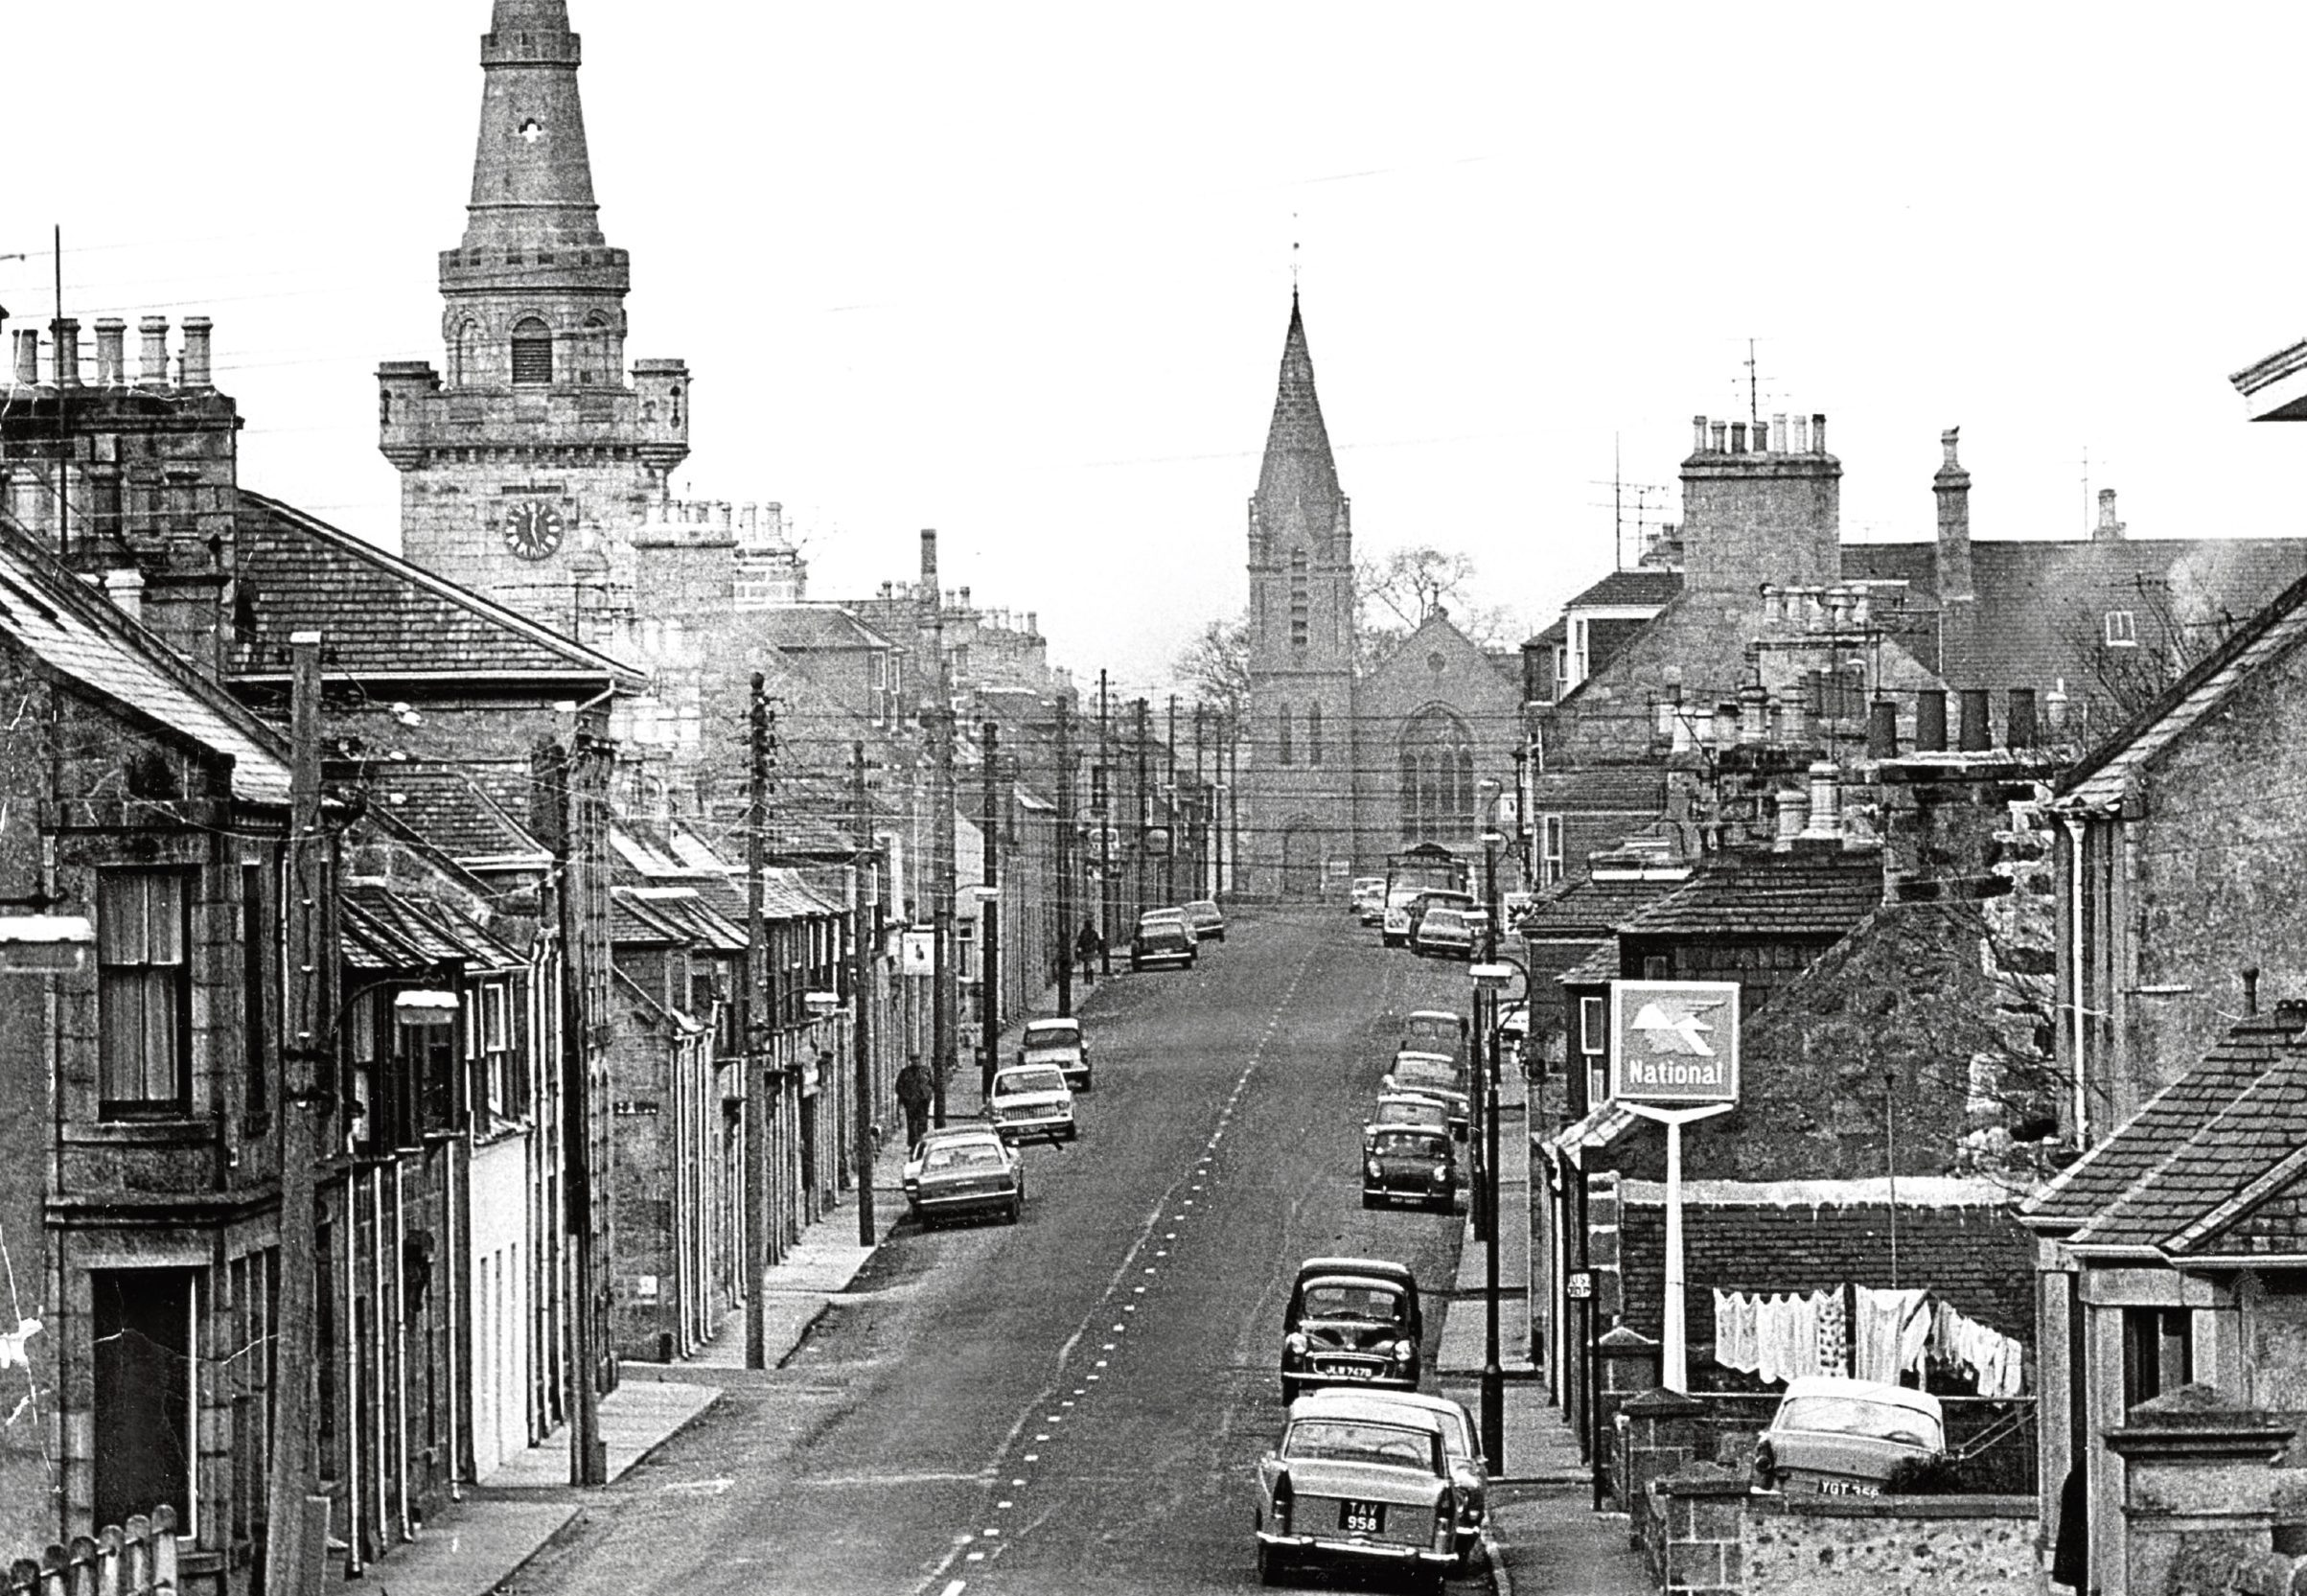 1969: The High Street of Strichen as it was almost 50 years ago.